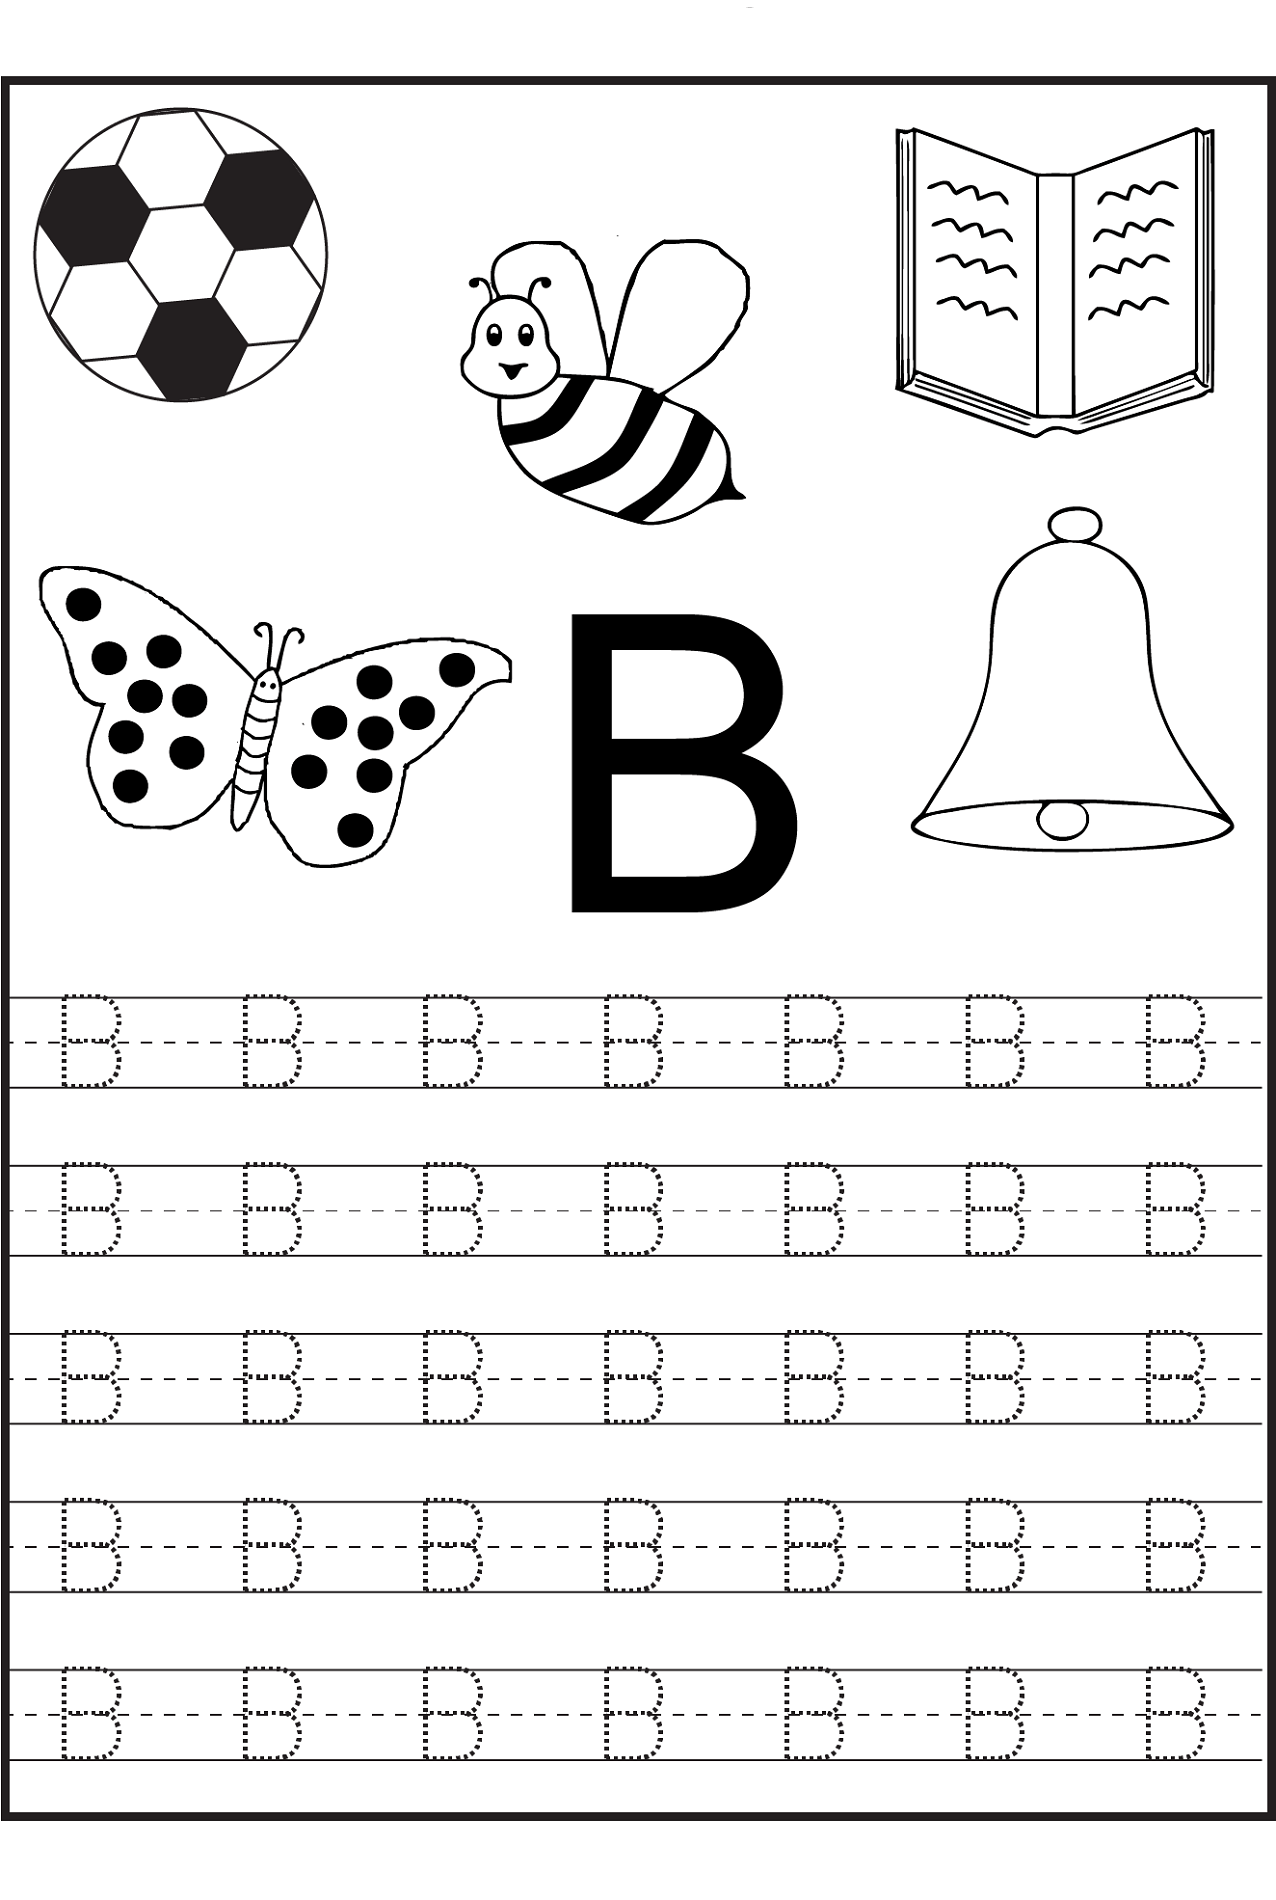 Tracing Alphabet For Writing Practice